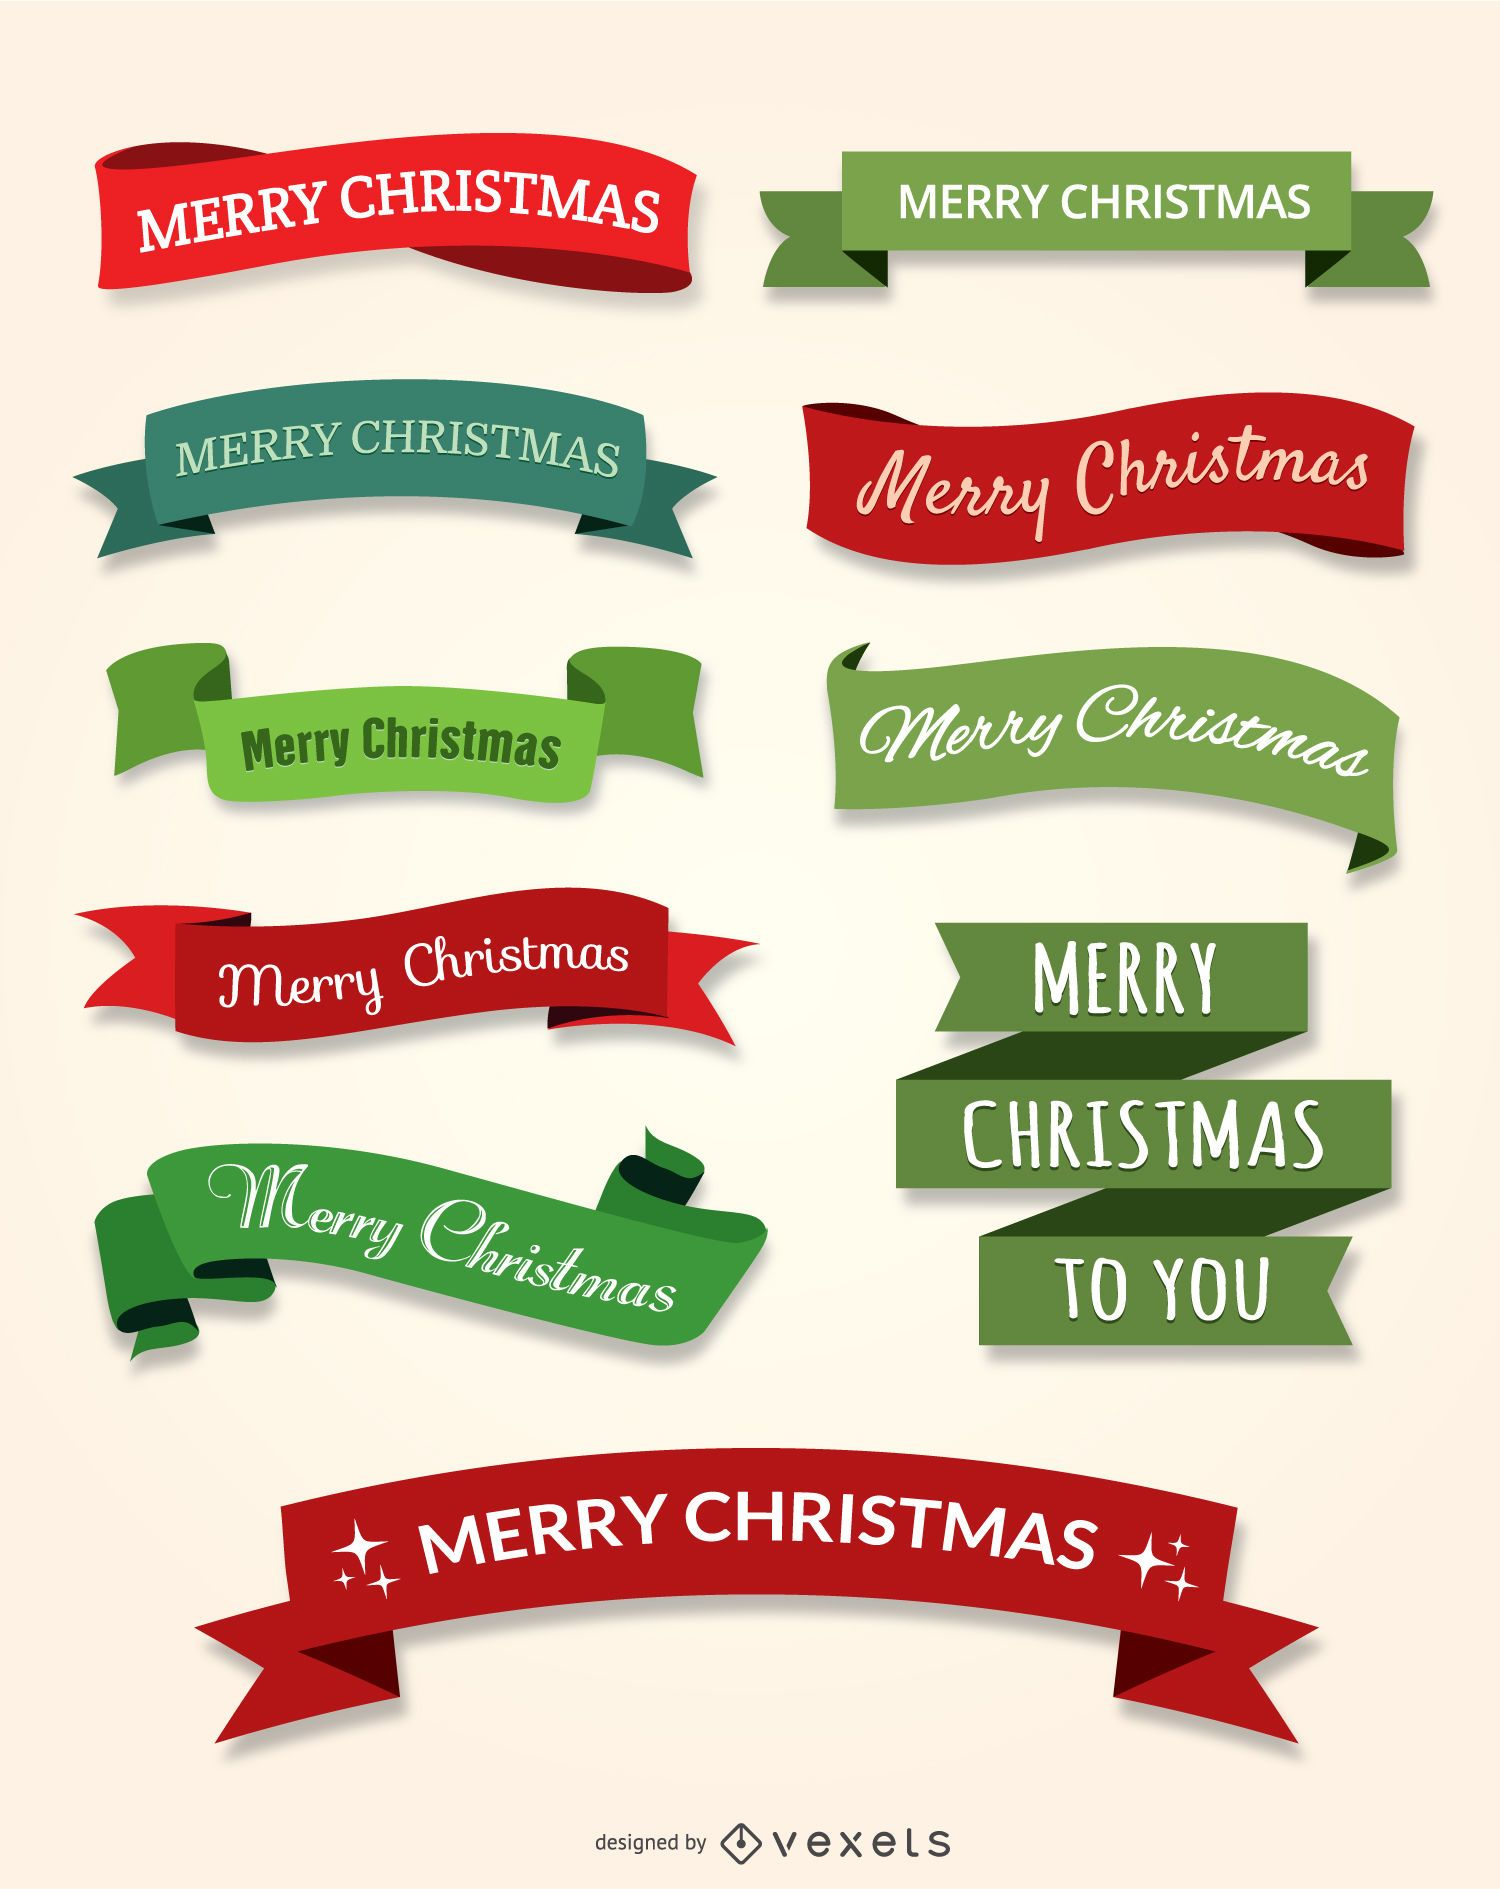 10 Merry Christmas ribbon set - Vector download